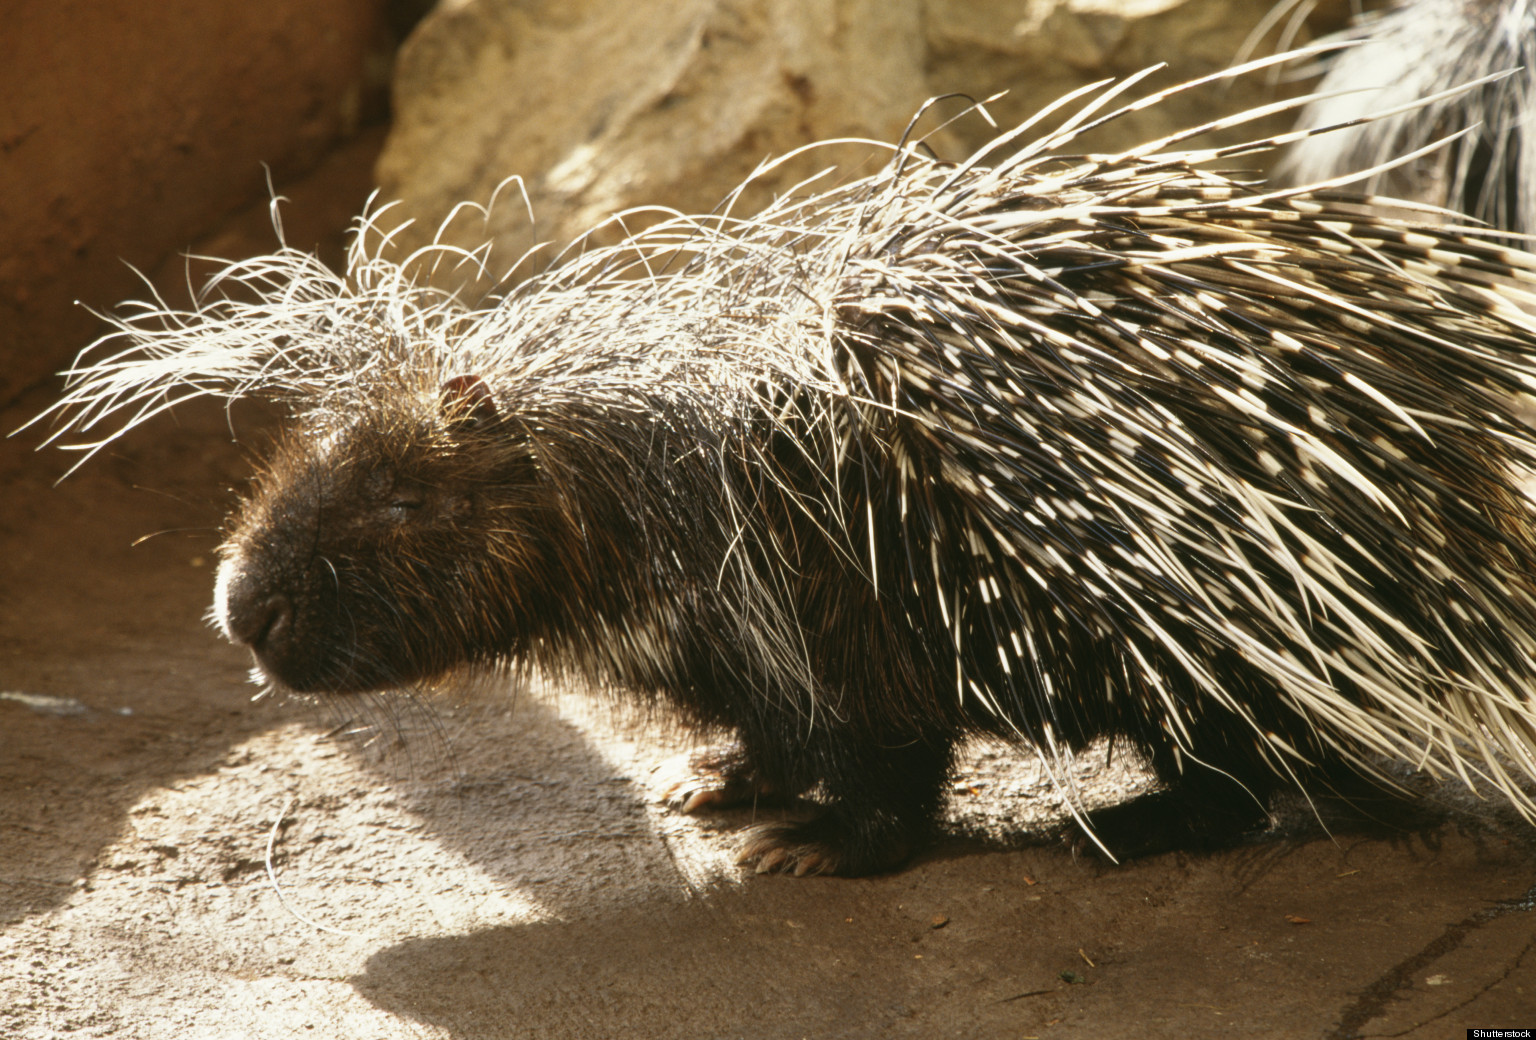 Porcupine Quills Inspire Better Needles For Medical ...